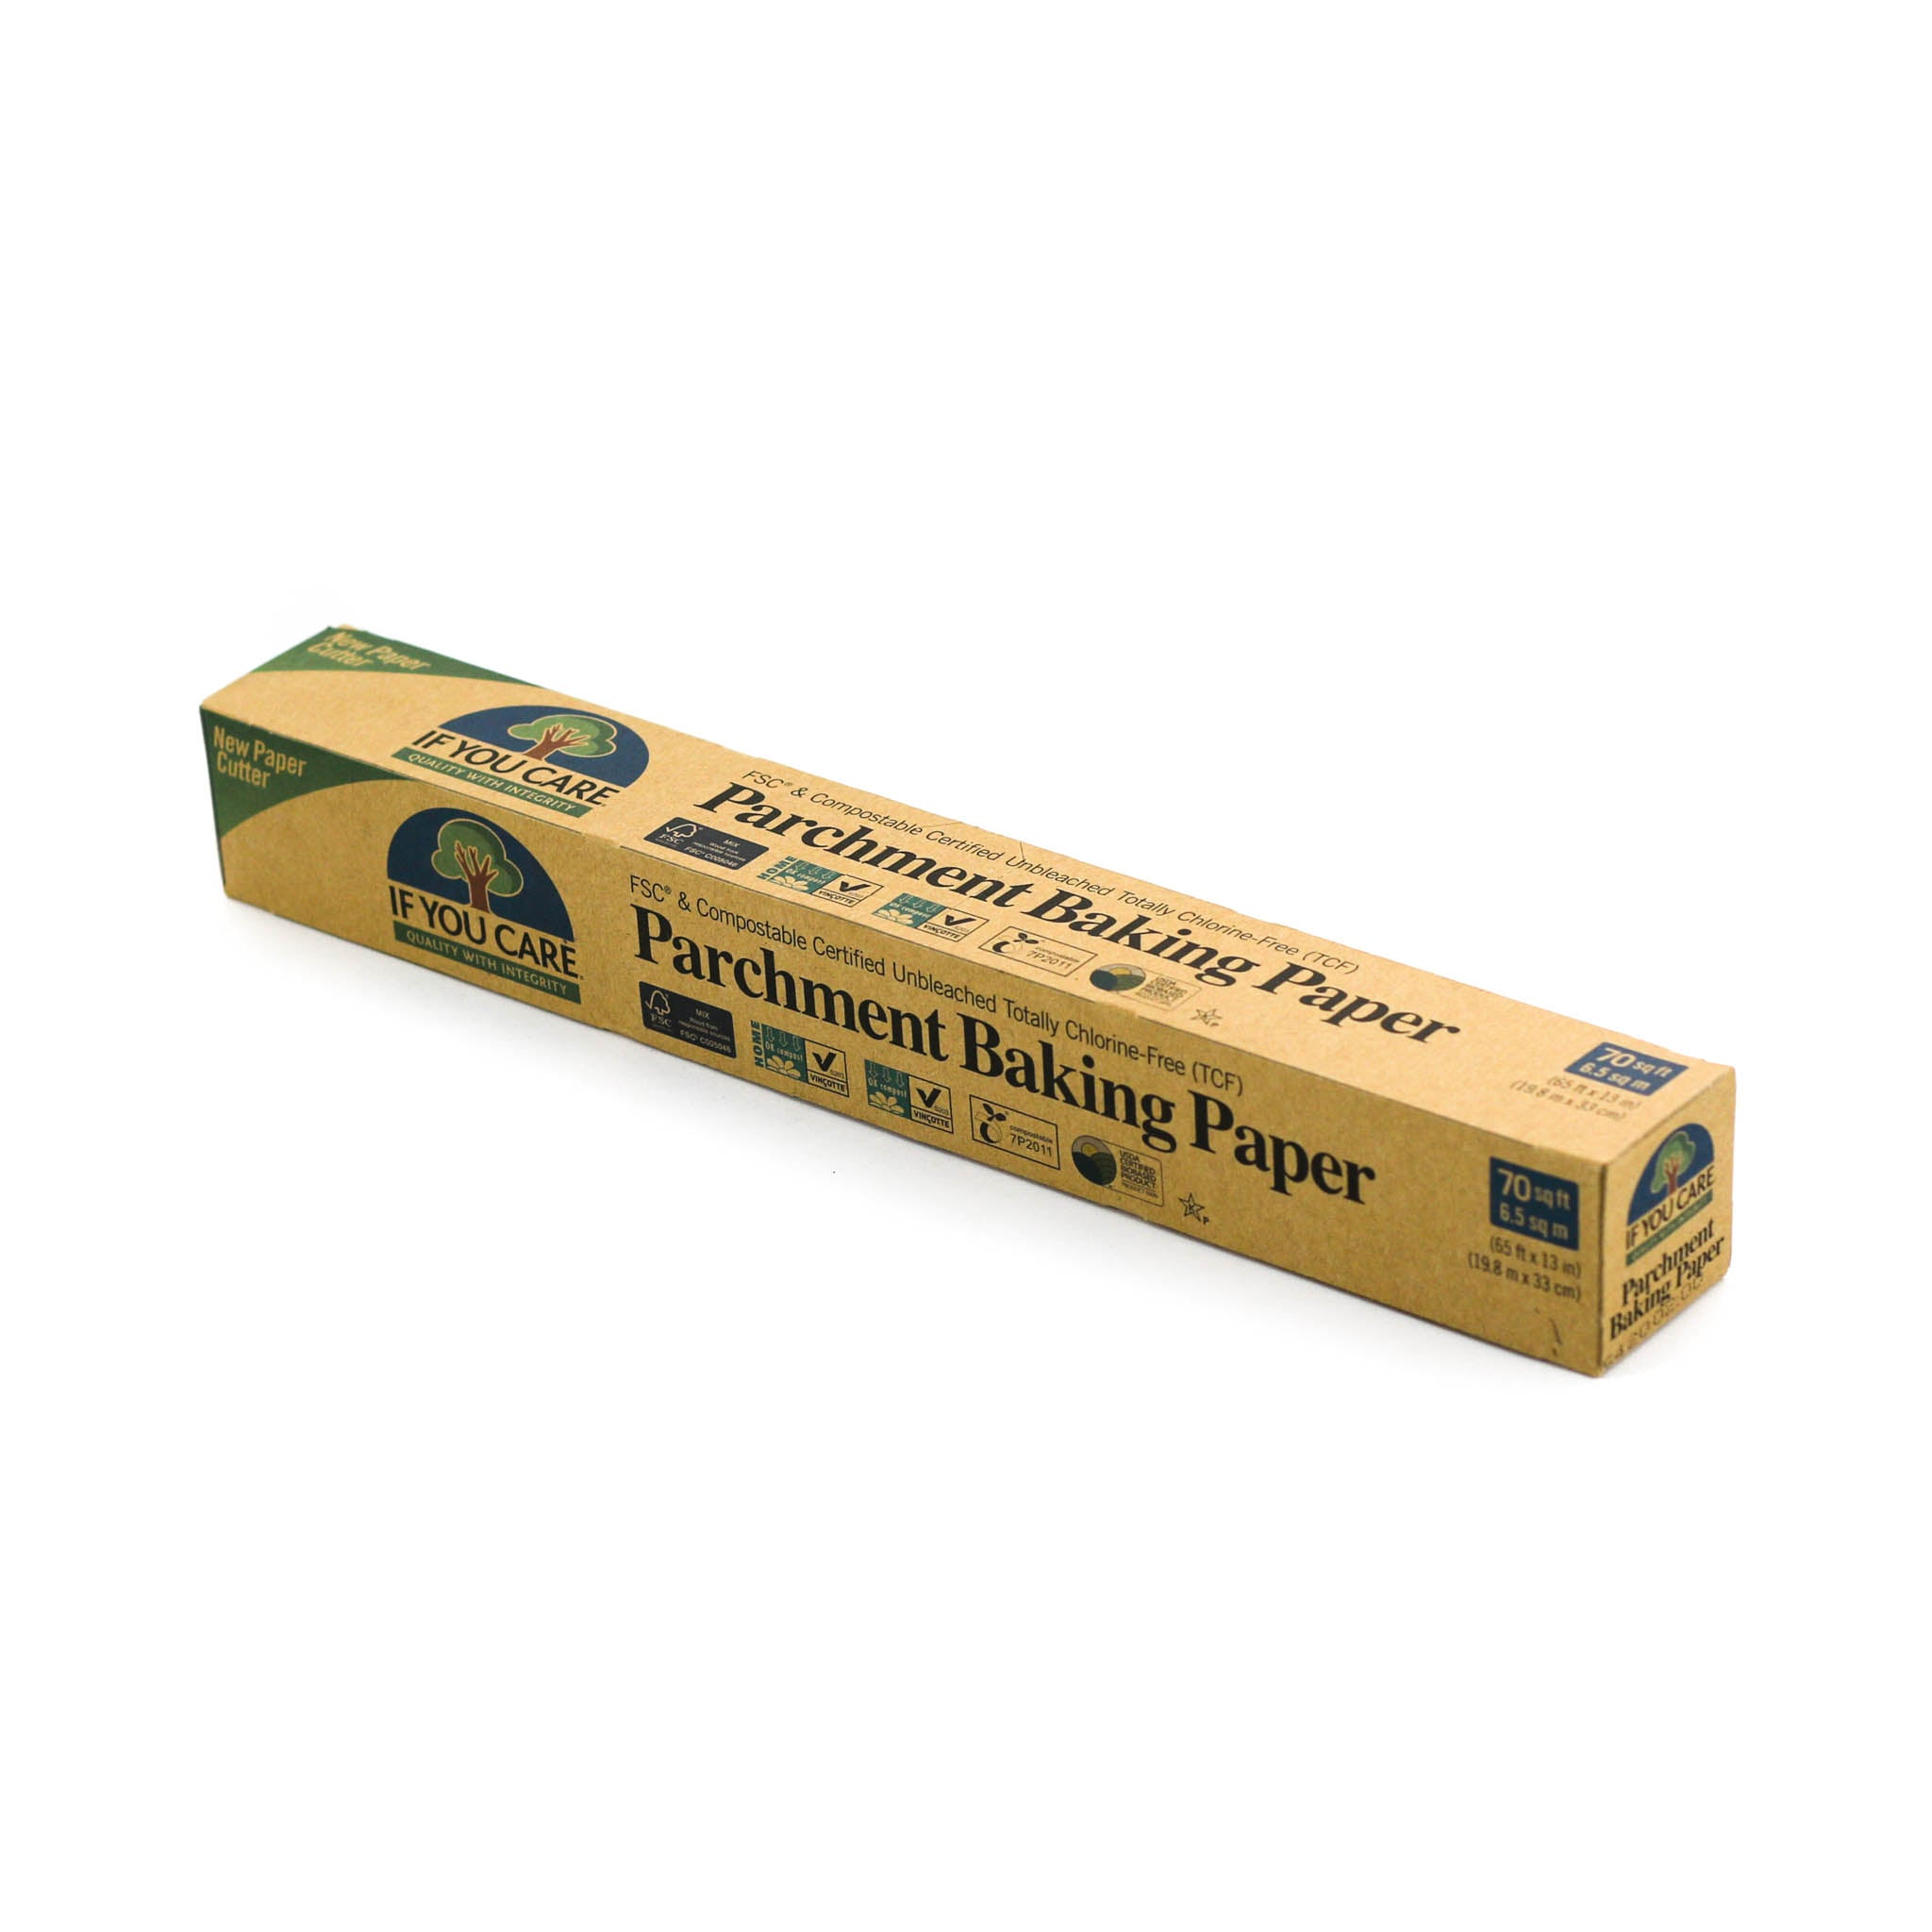 If You Care Parchment Baking Paper Roll 33cm x 19.8m